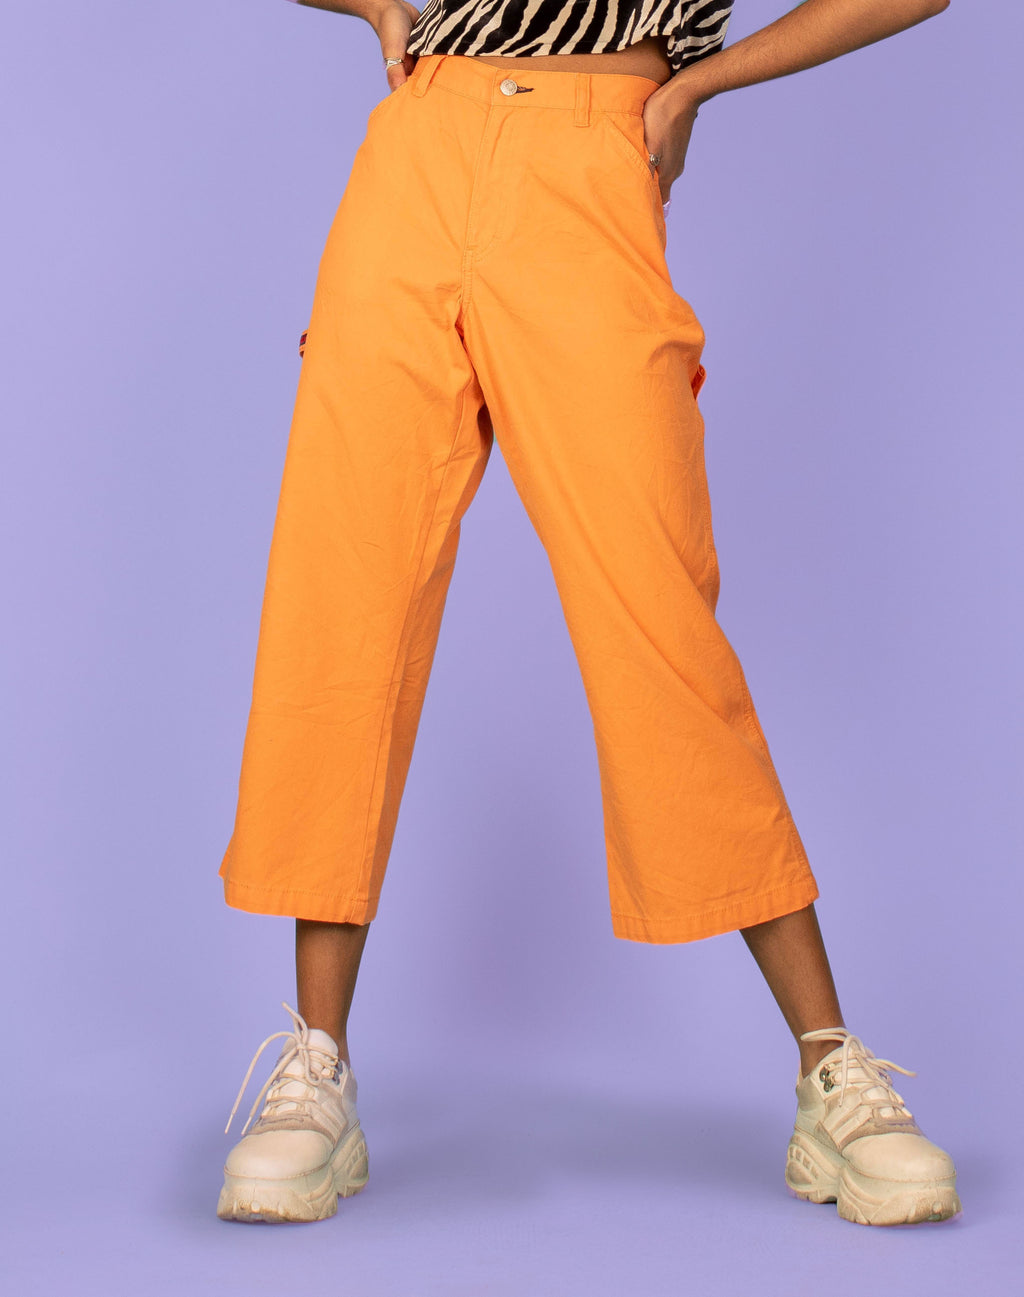 TOMMY HILFIGER ORANGE PANTS